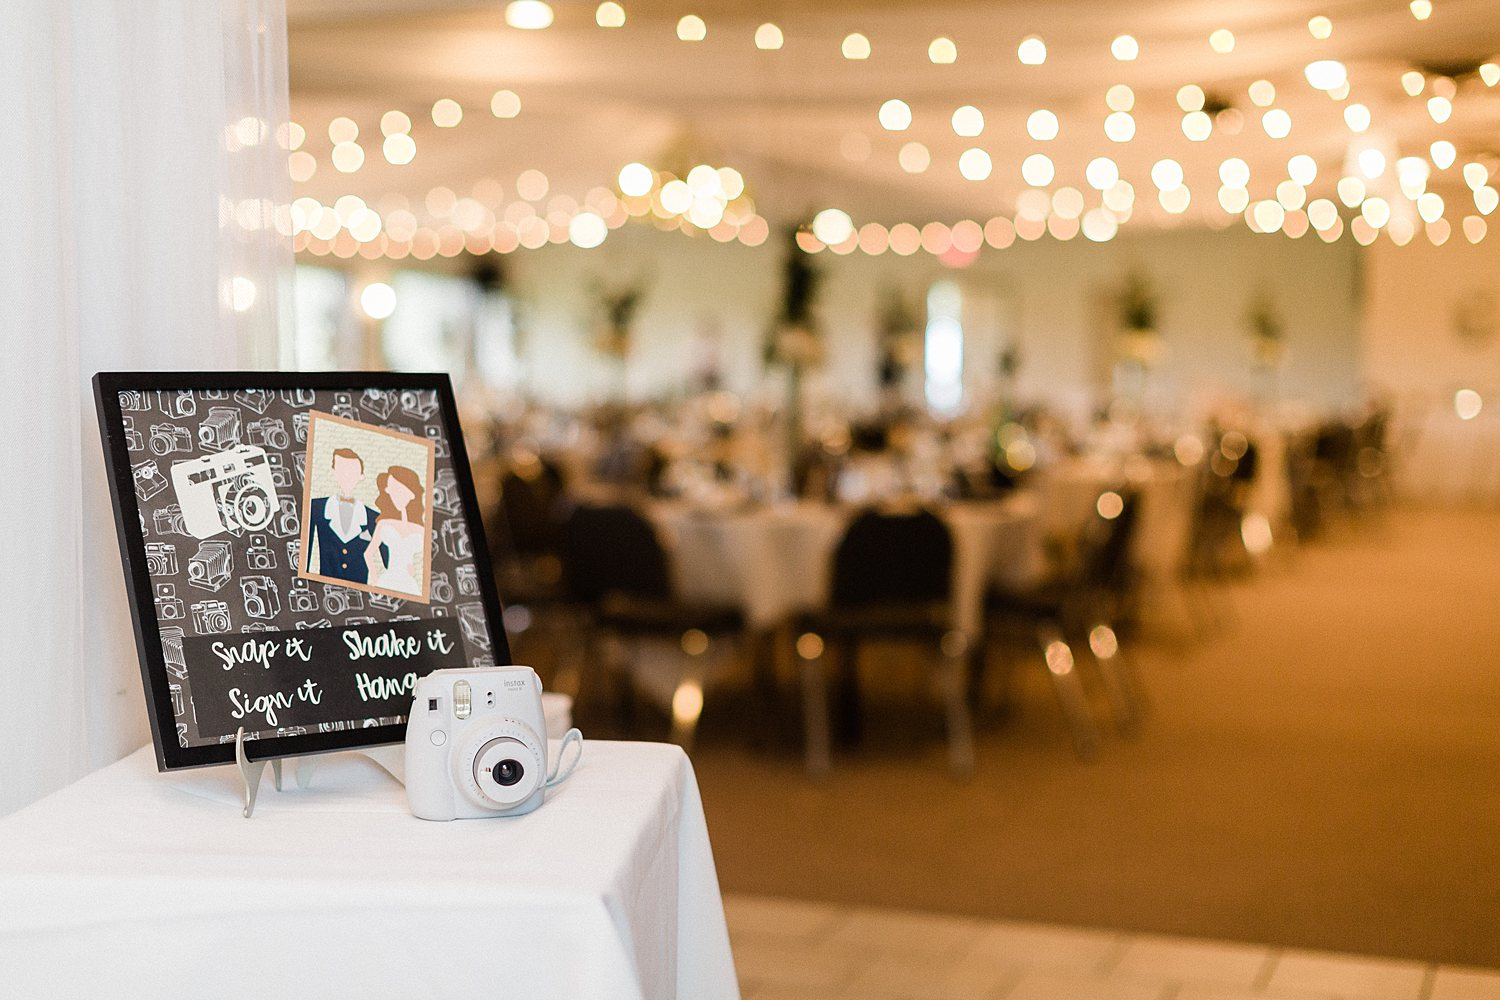 North_Central_Wisconsin_Event_Wedding_Venues_Fall_Weddings_The_Bailiwick_Venue_James-Stokes-Photography072.jpg